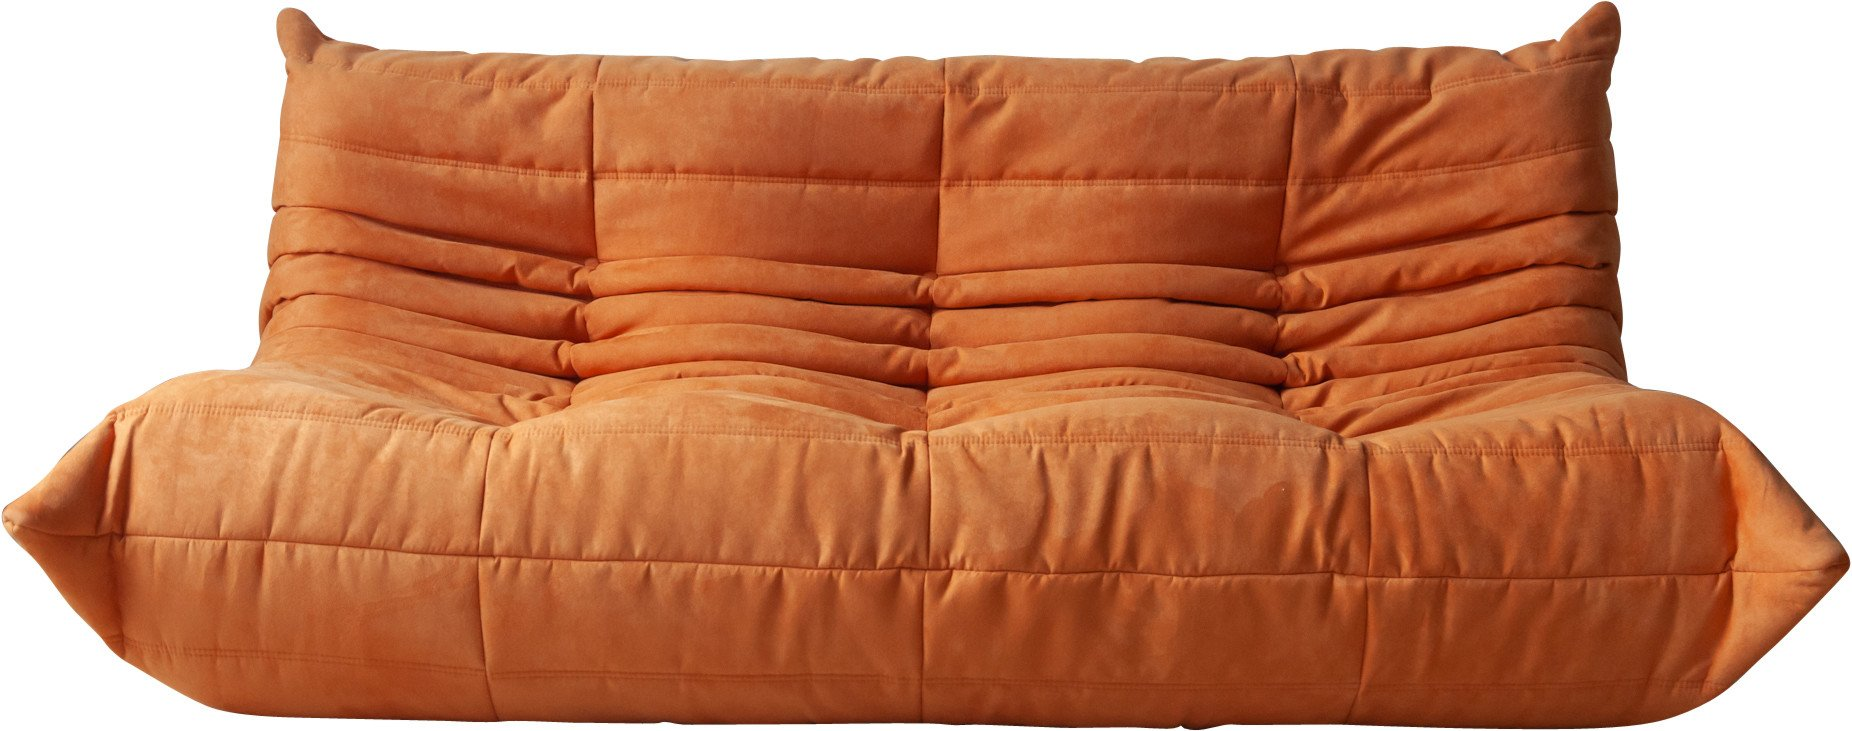 Sofa in Orange Microfiber by M. Ducaroy, Ligne Roset, France, 1970s